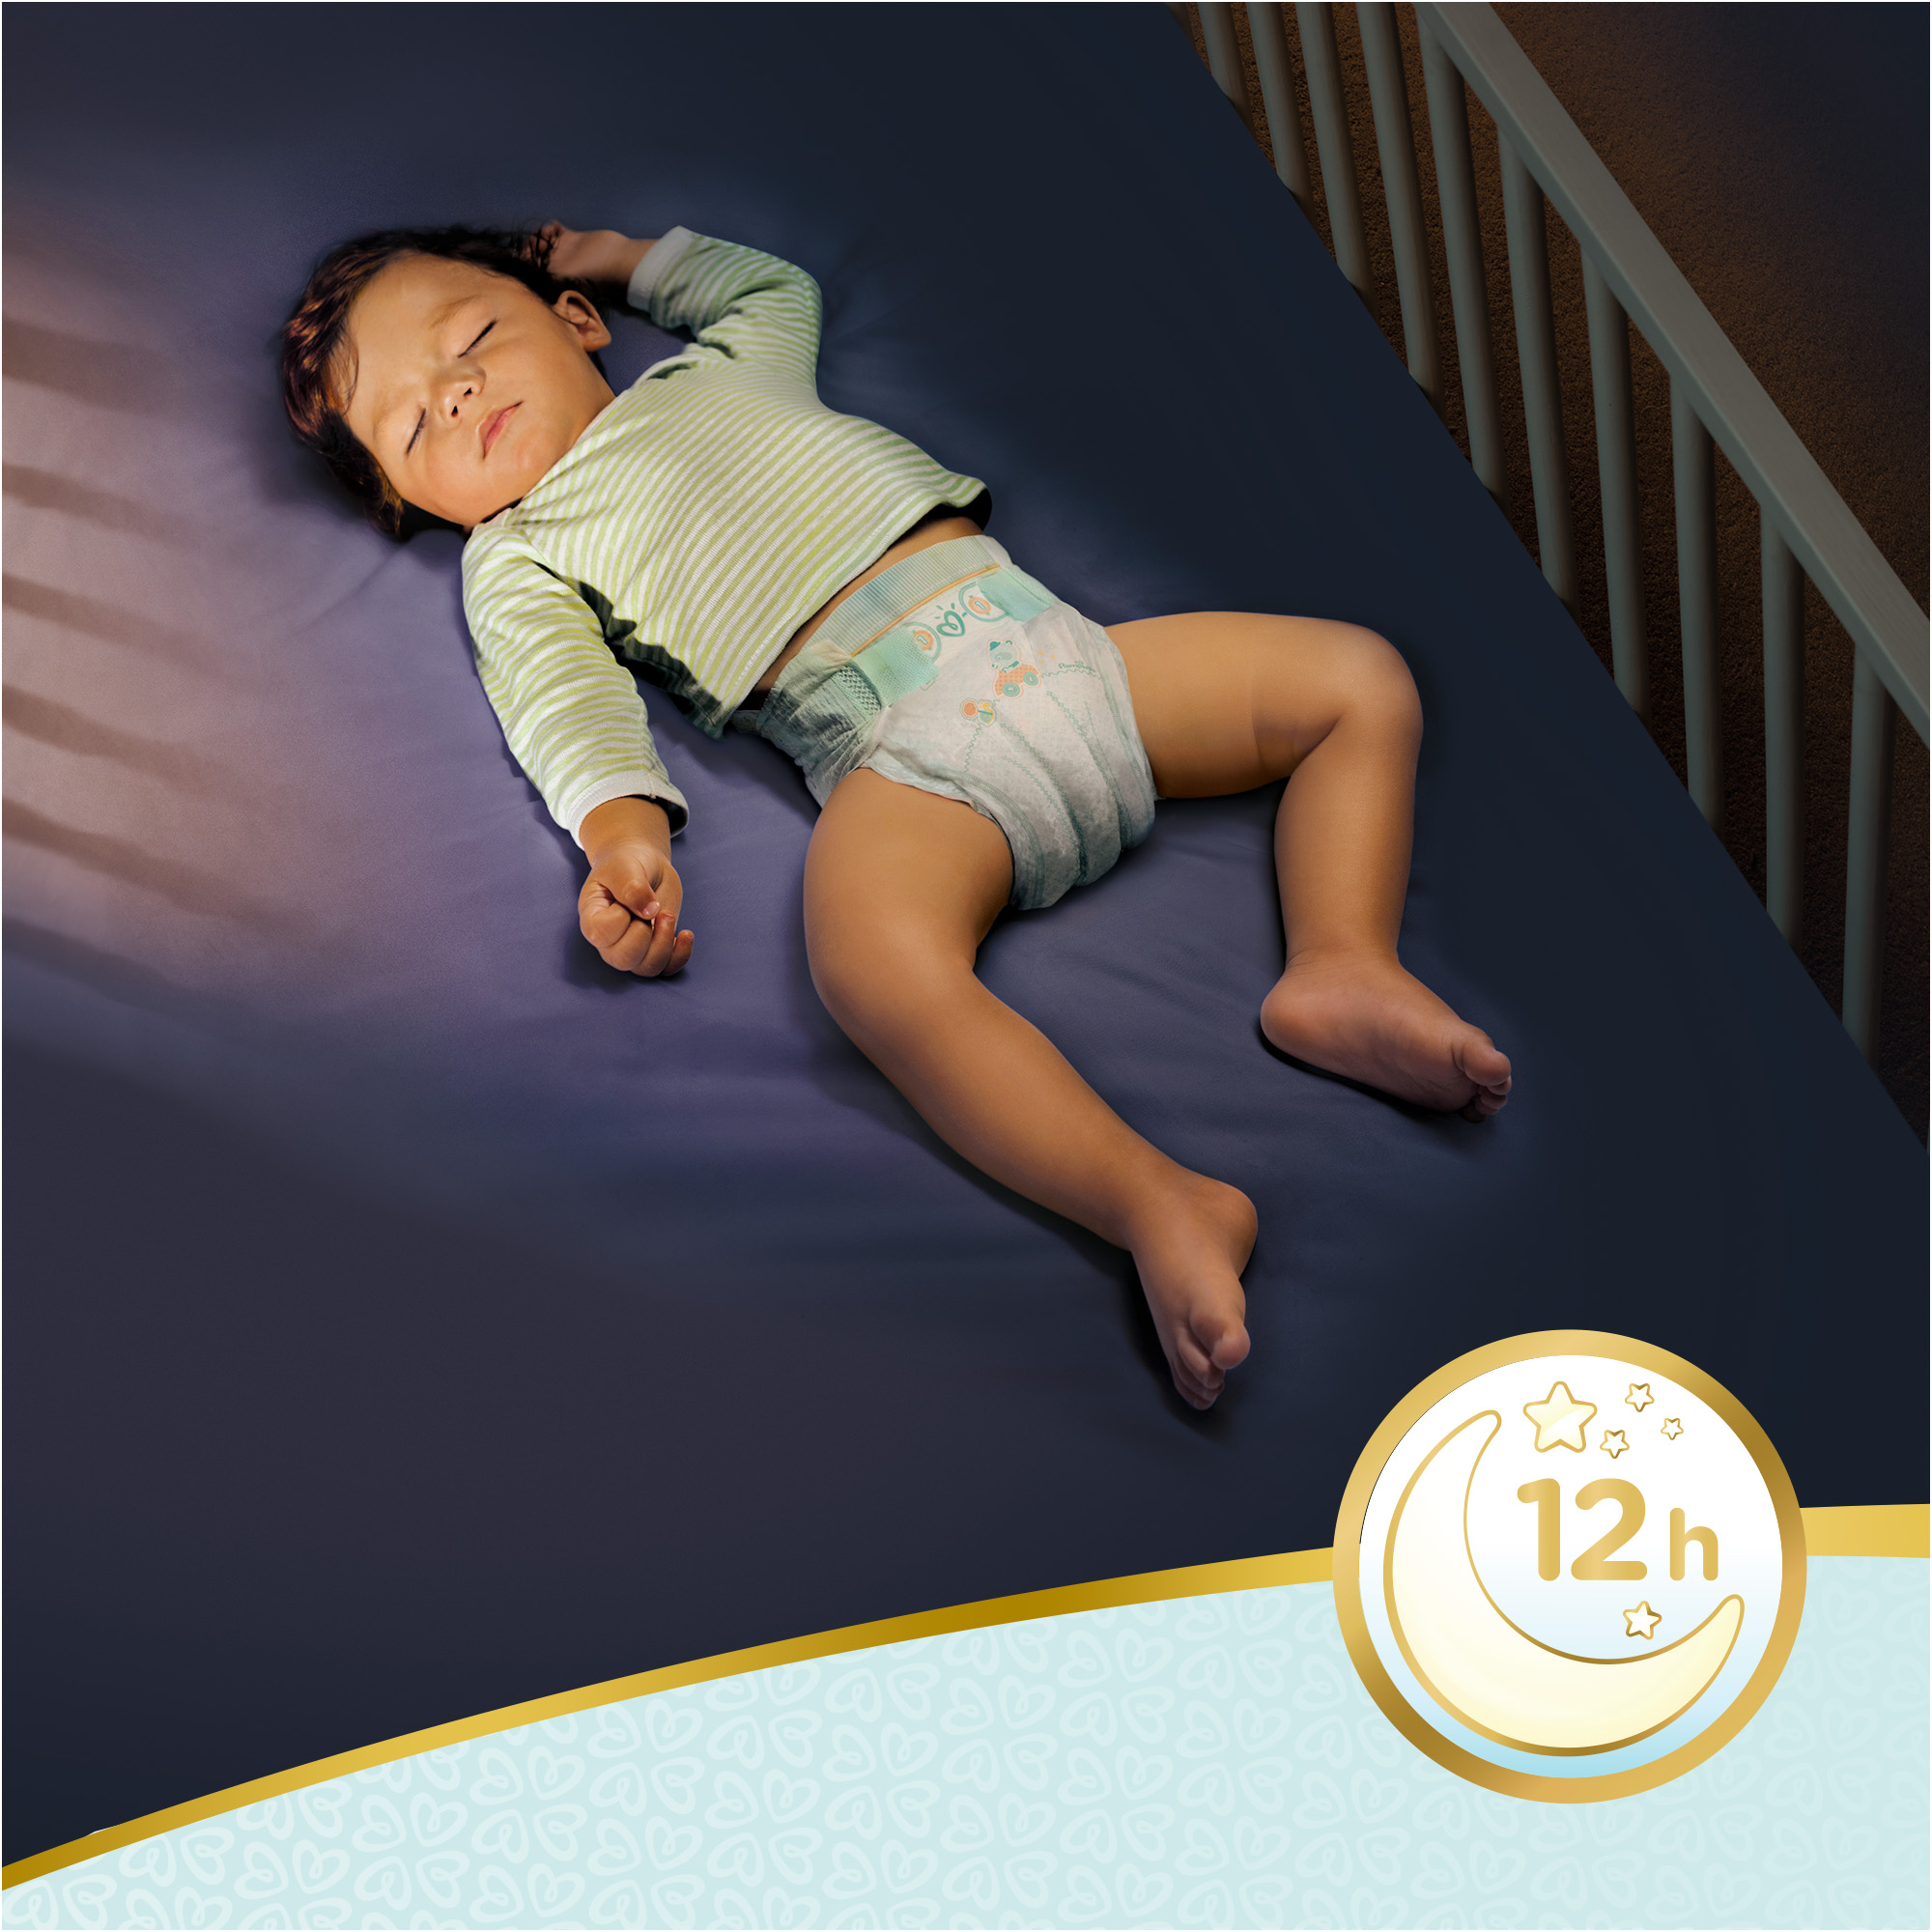 08001090759795_81696007_ECOMMERCECONTENT_SECONDARYIMAGE_FRONT_CENTER_1_Pampers.jpg